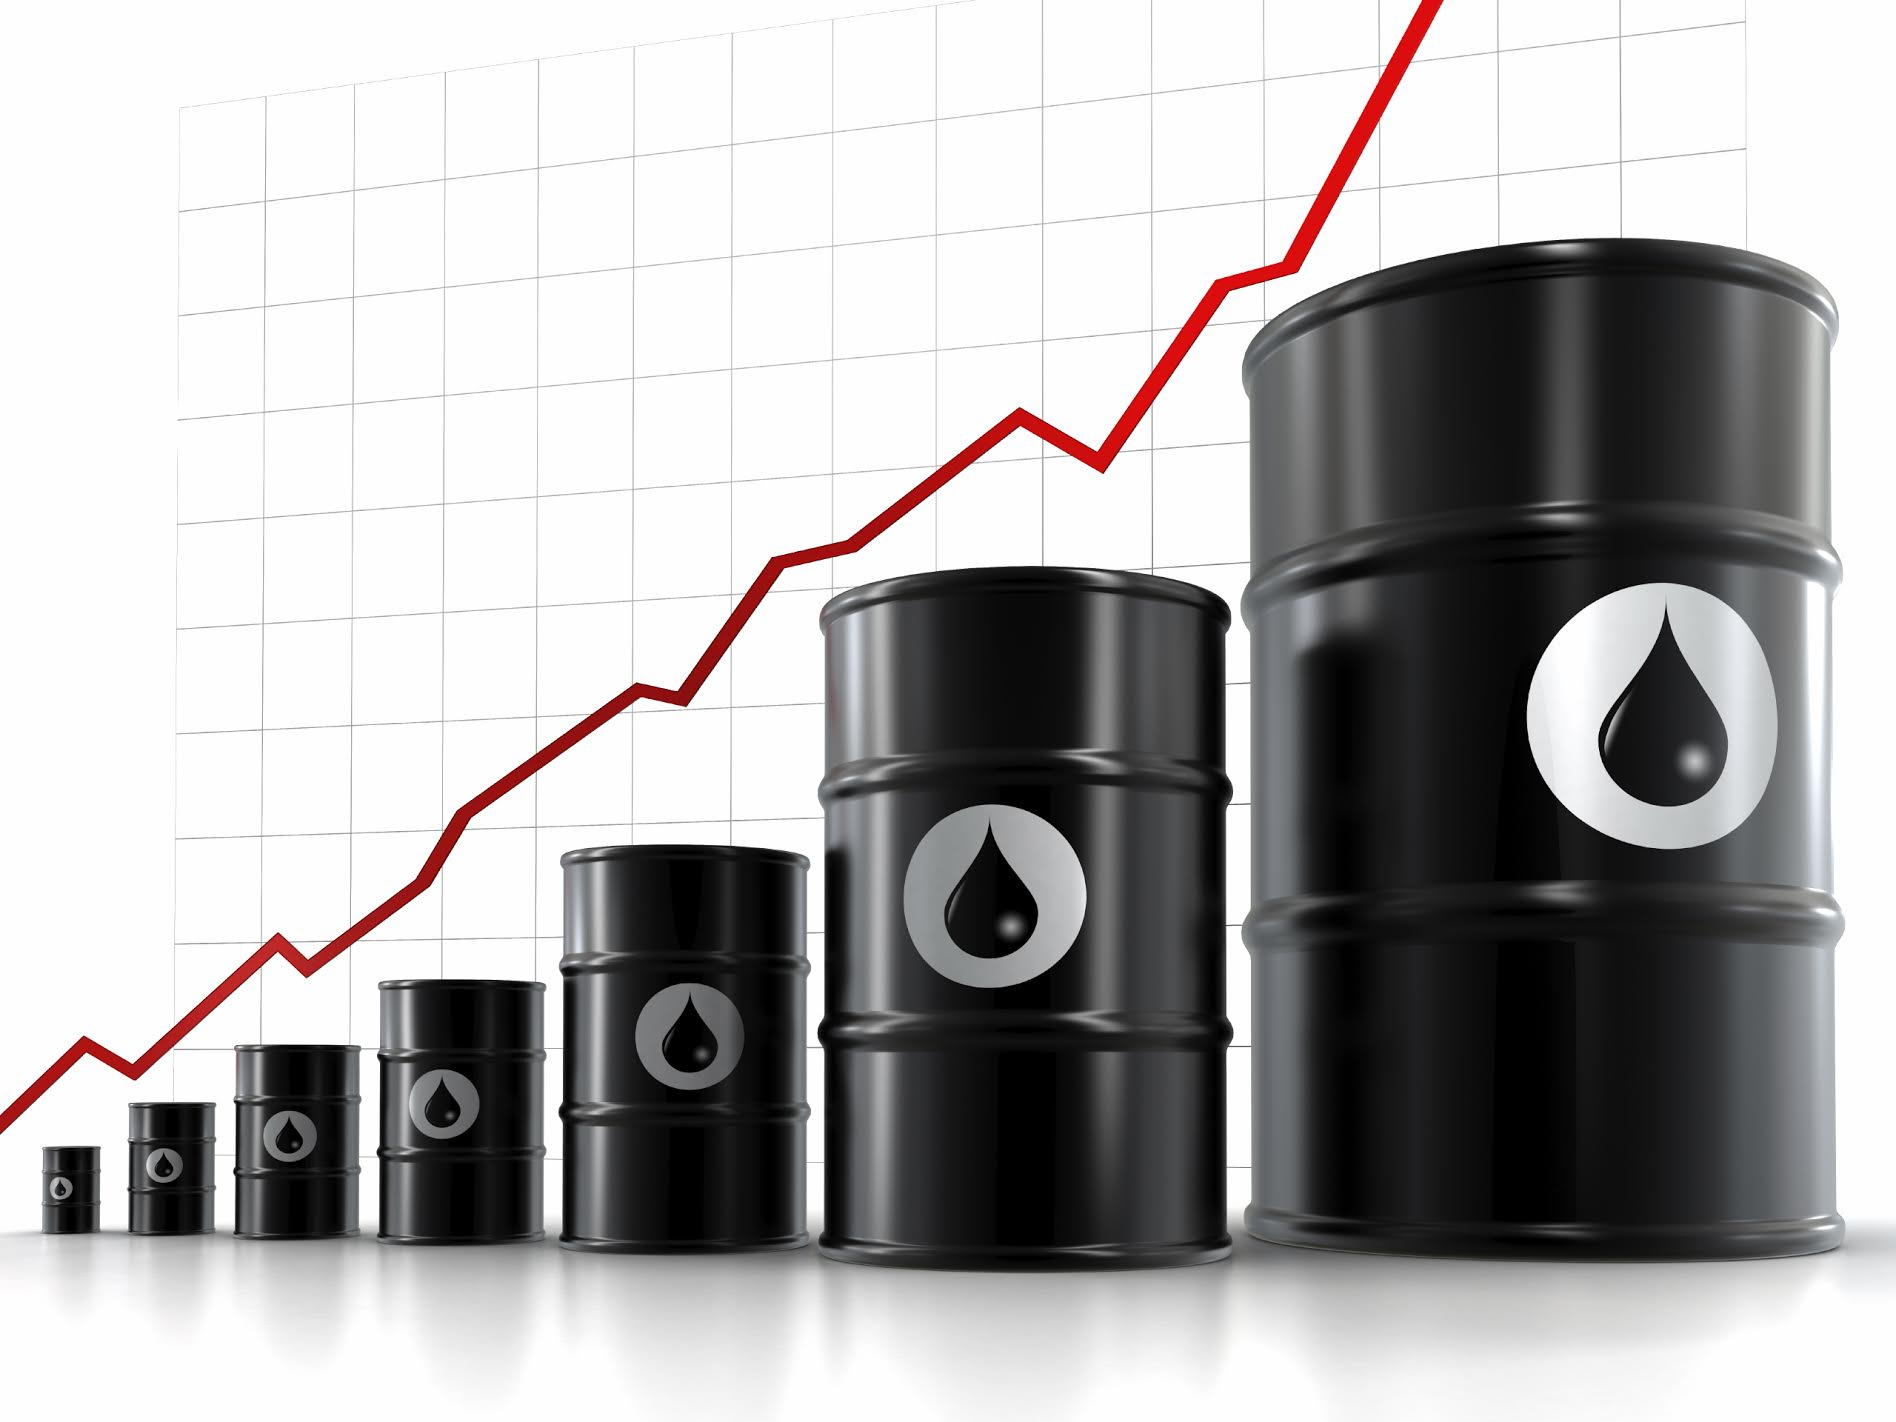 Higher oil prices mean more expensive petrol…